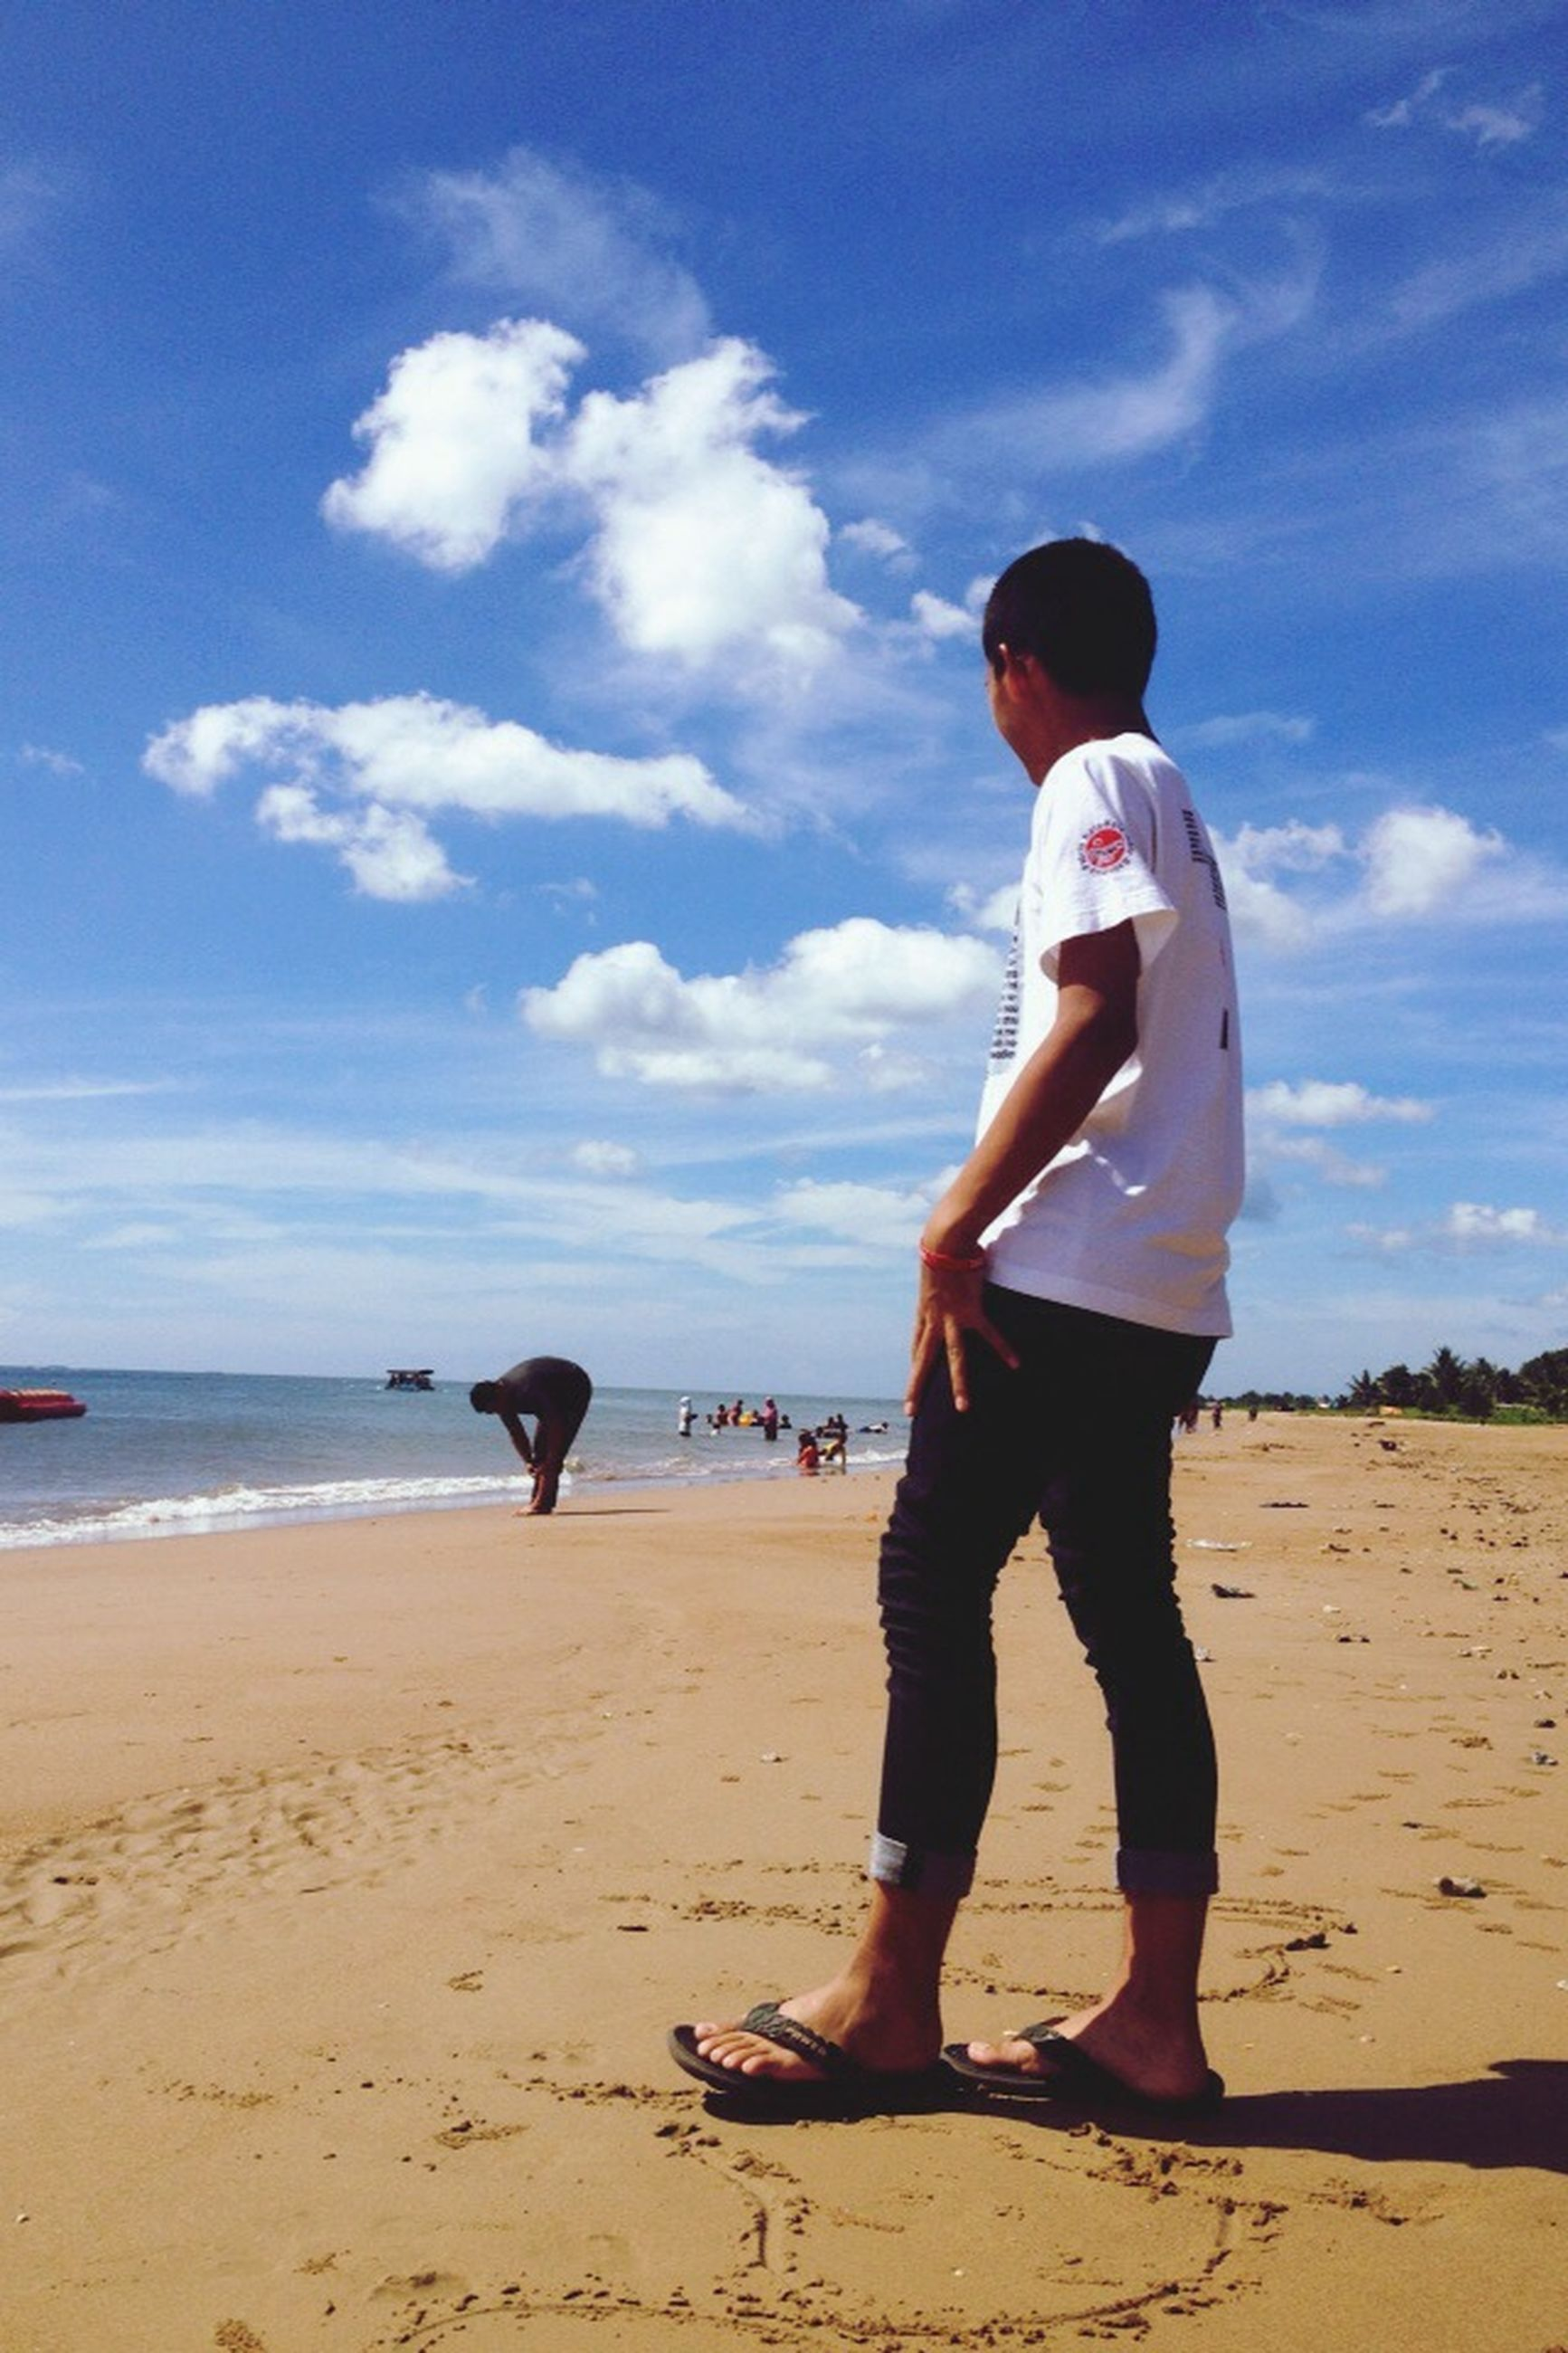 beach, full length, sky, sea, shore, sand, lifestyles, leisure activity, casual clothing, water, childhood, horizon over water, cloud - sky, rear view, standing, vacations, cloud, boys